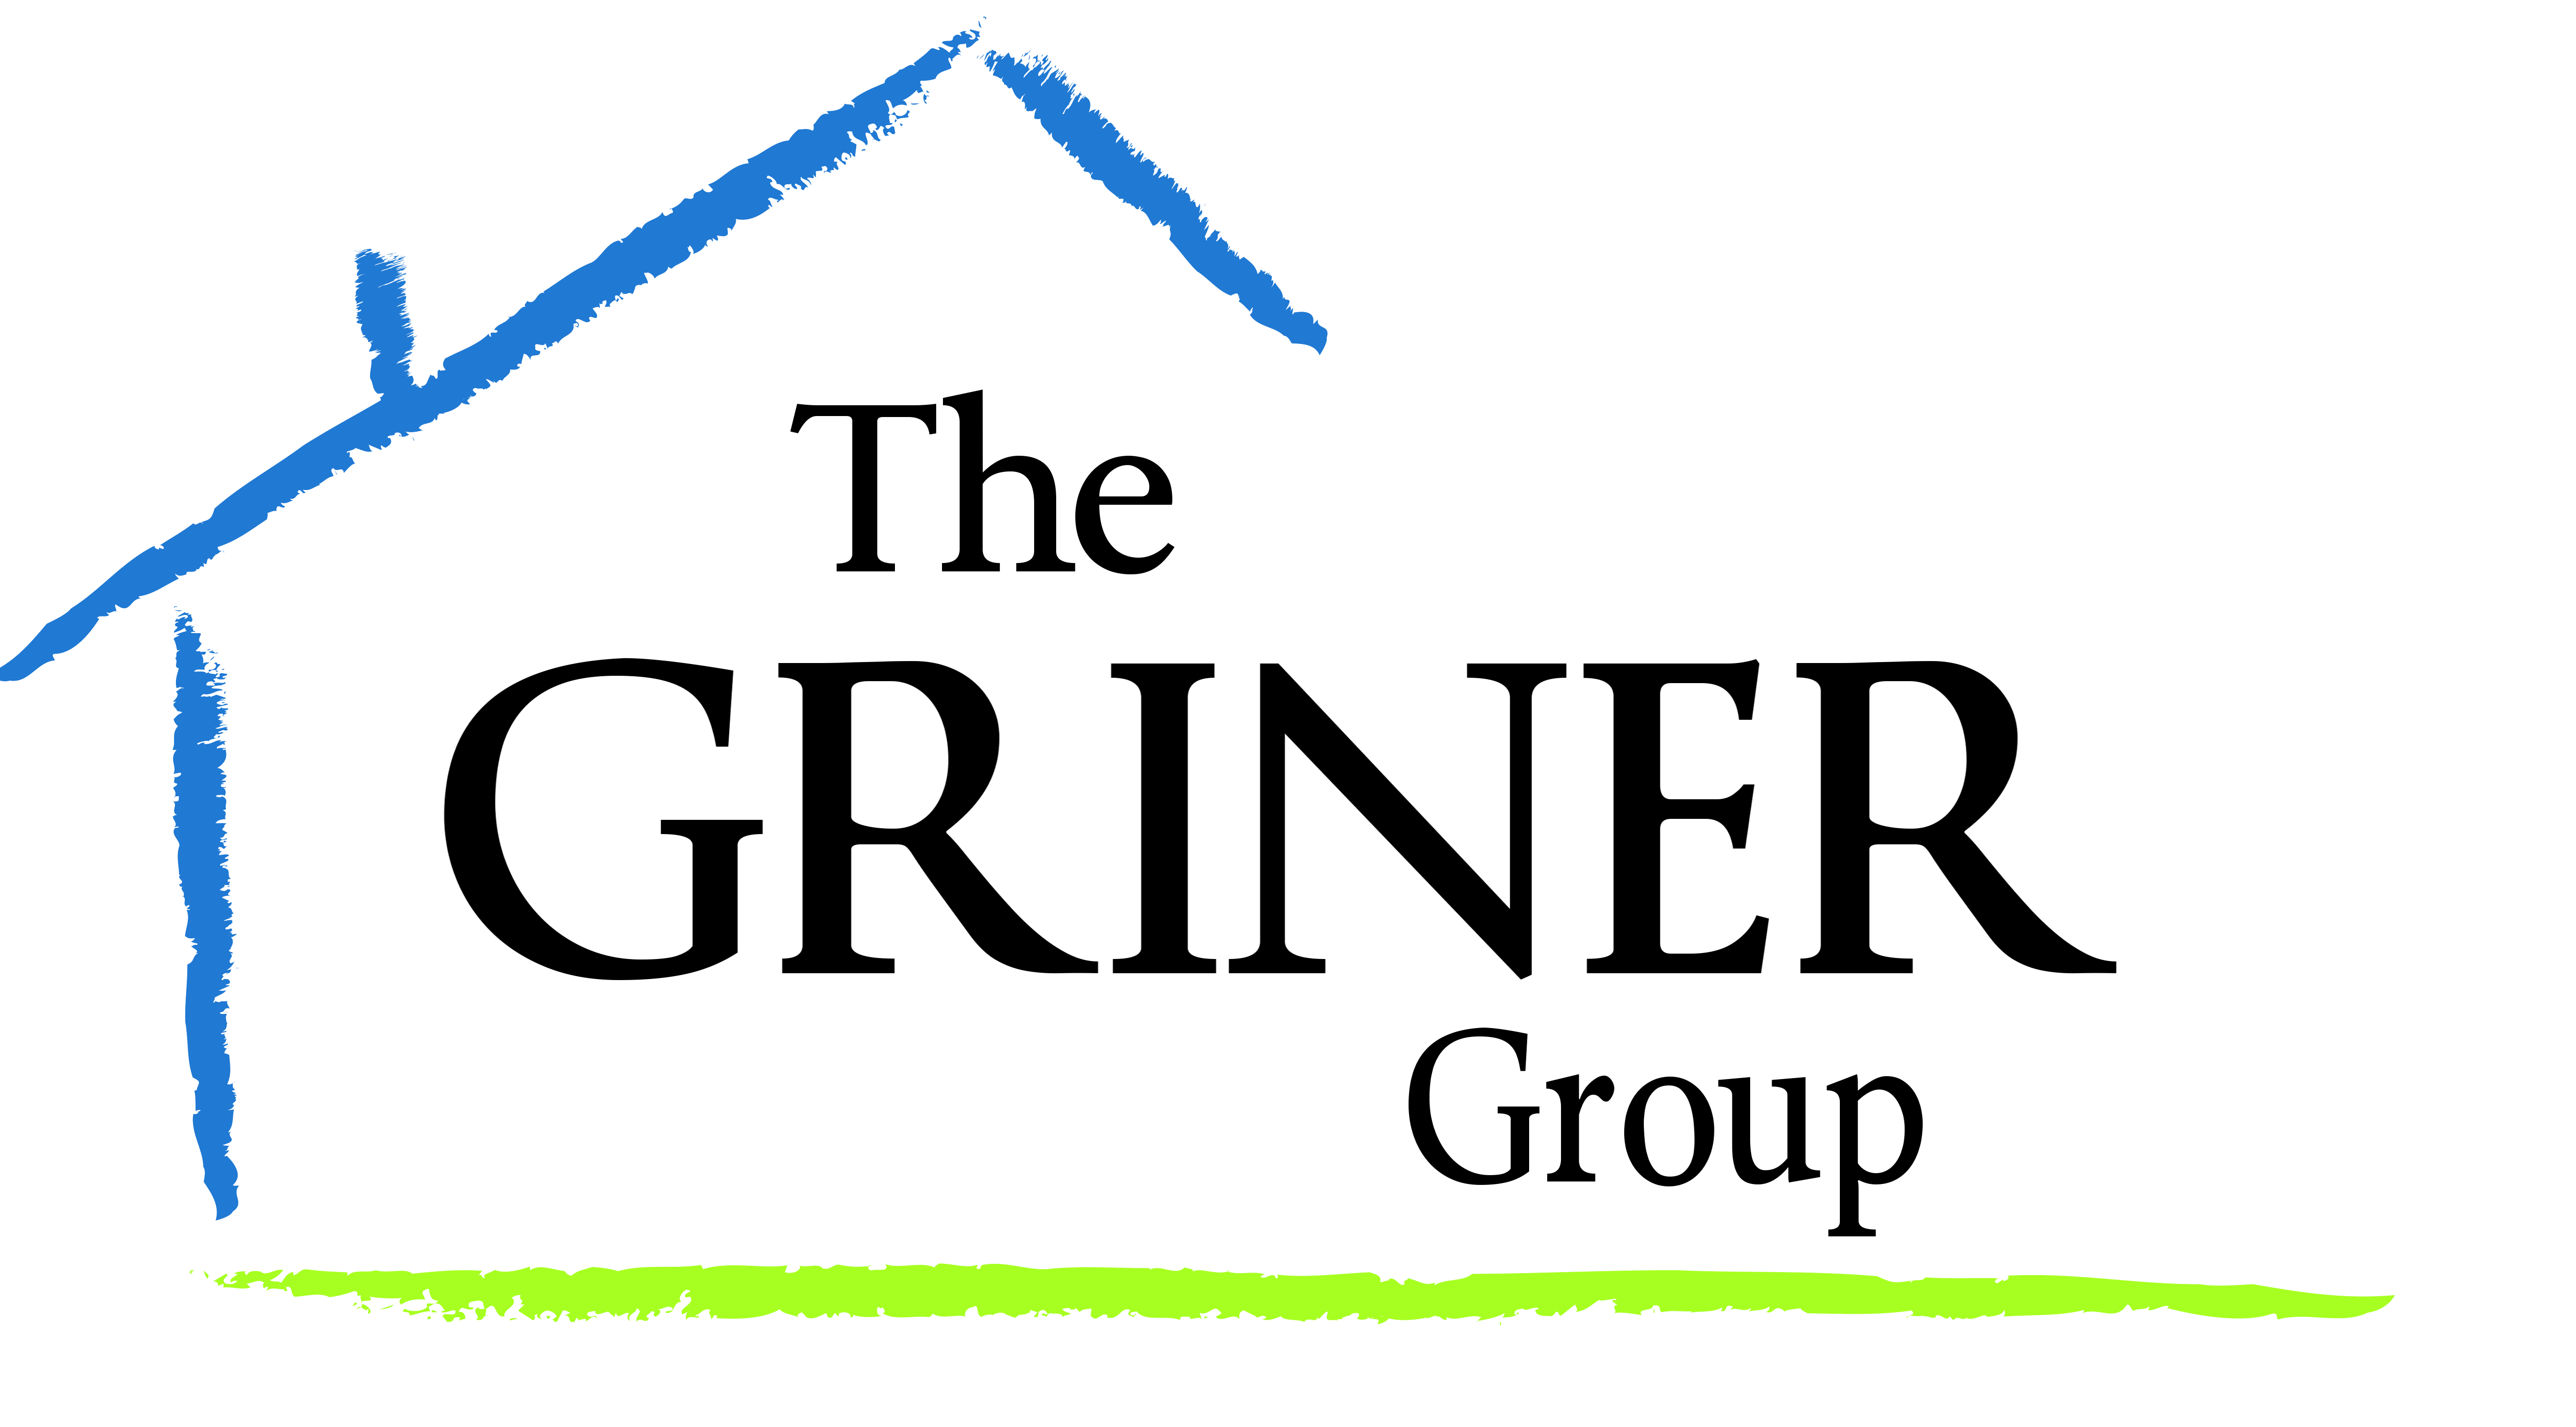 The Griner Group